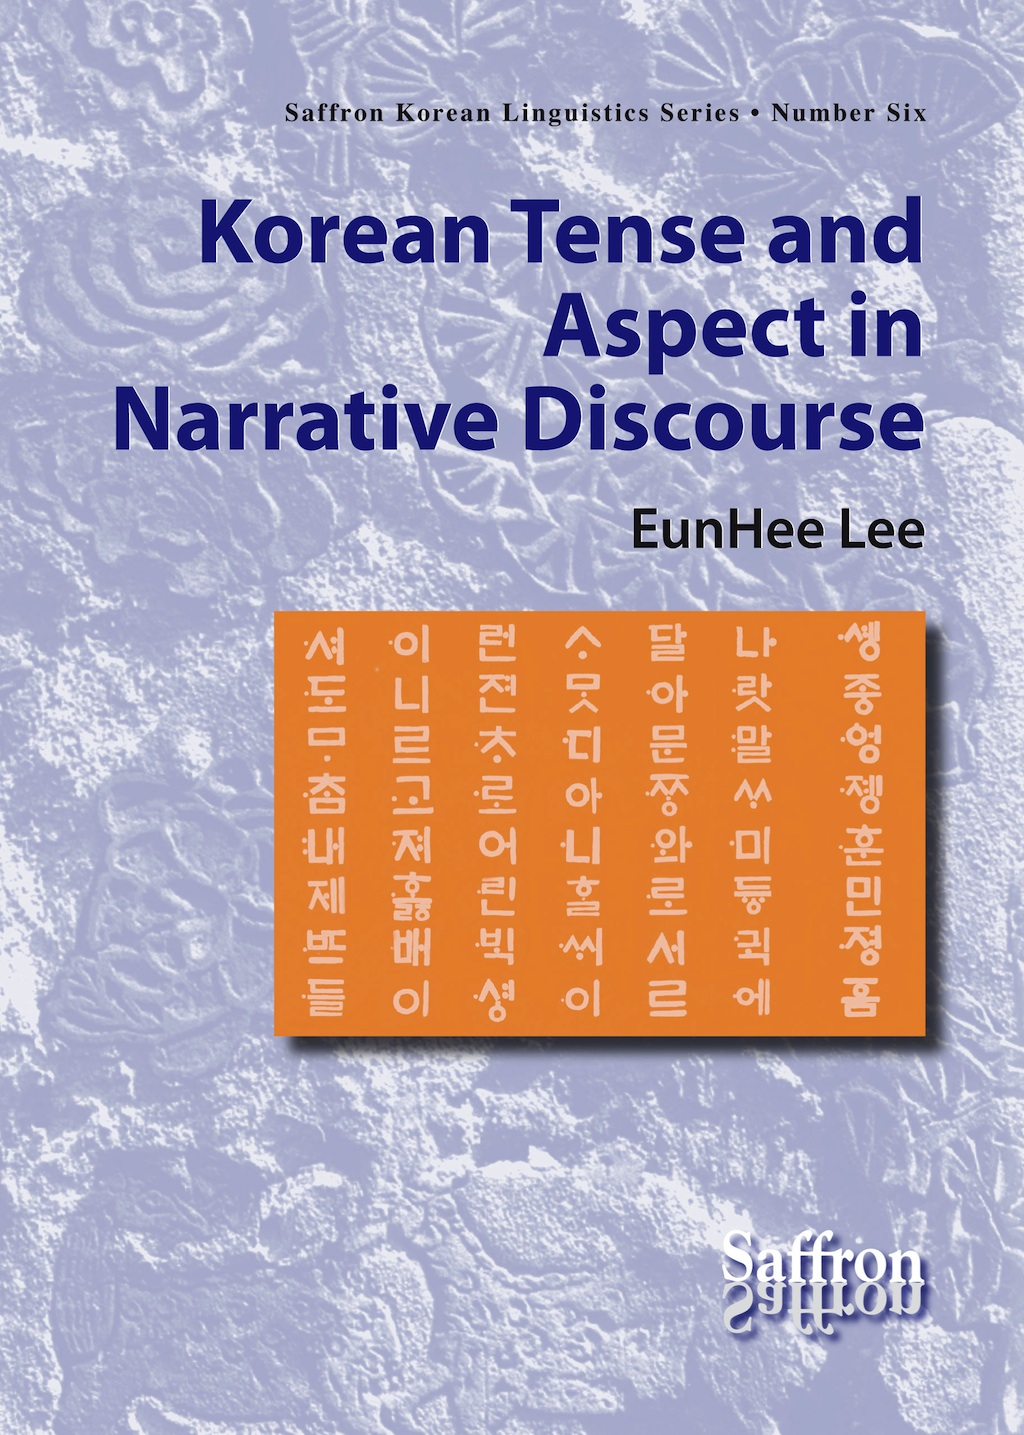 Korean Tense and Aspect in Narrative Discourse Product no.: 9781872843438/1740-2956